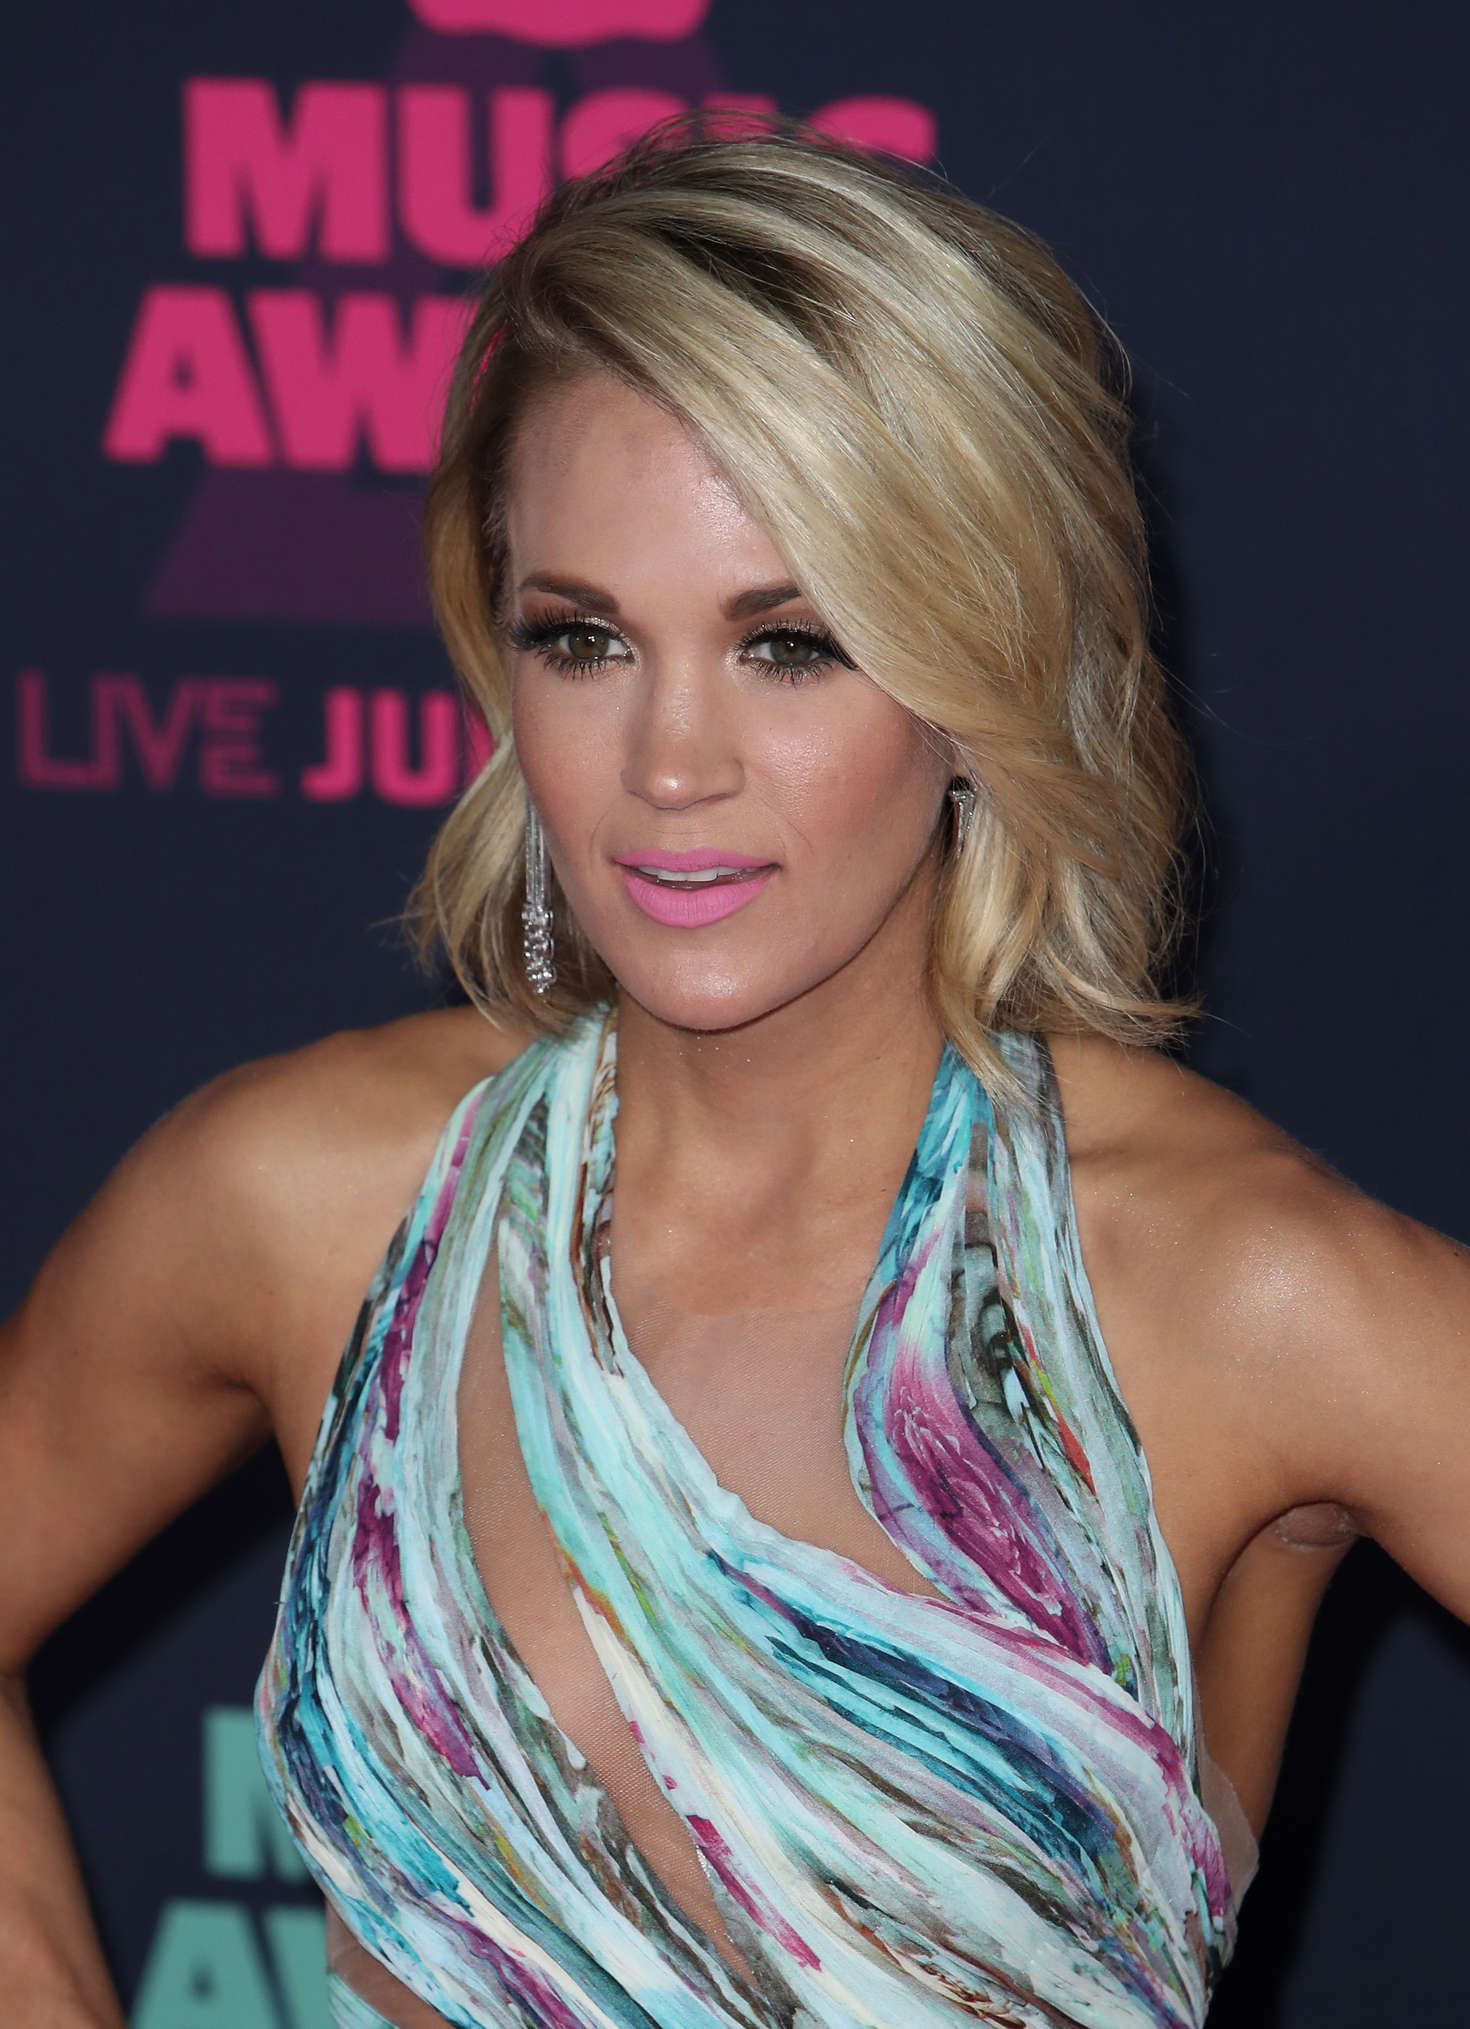 Carrie Underwood Cmt Music Awards 2016 08